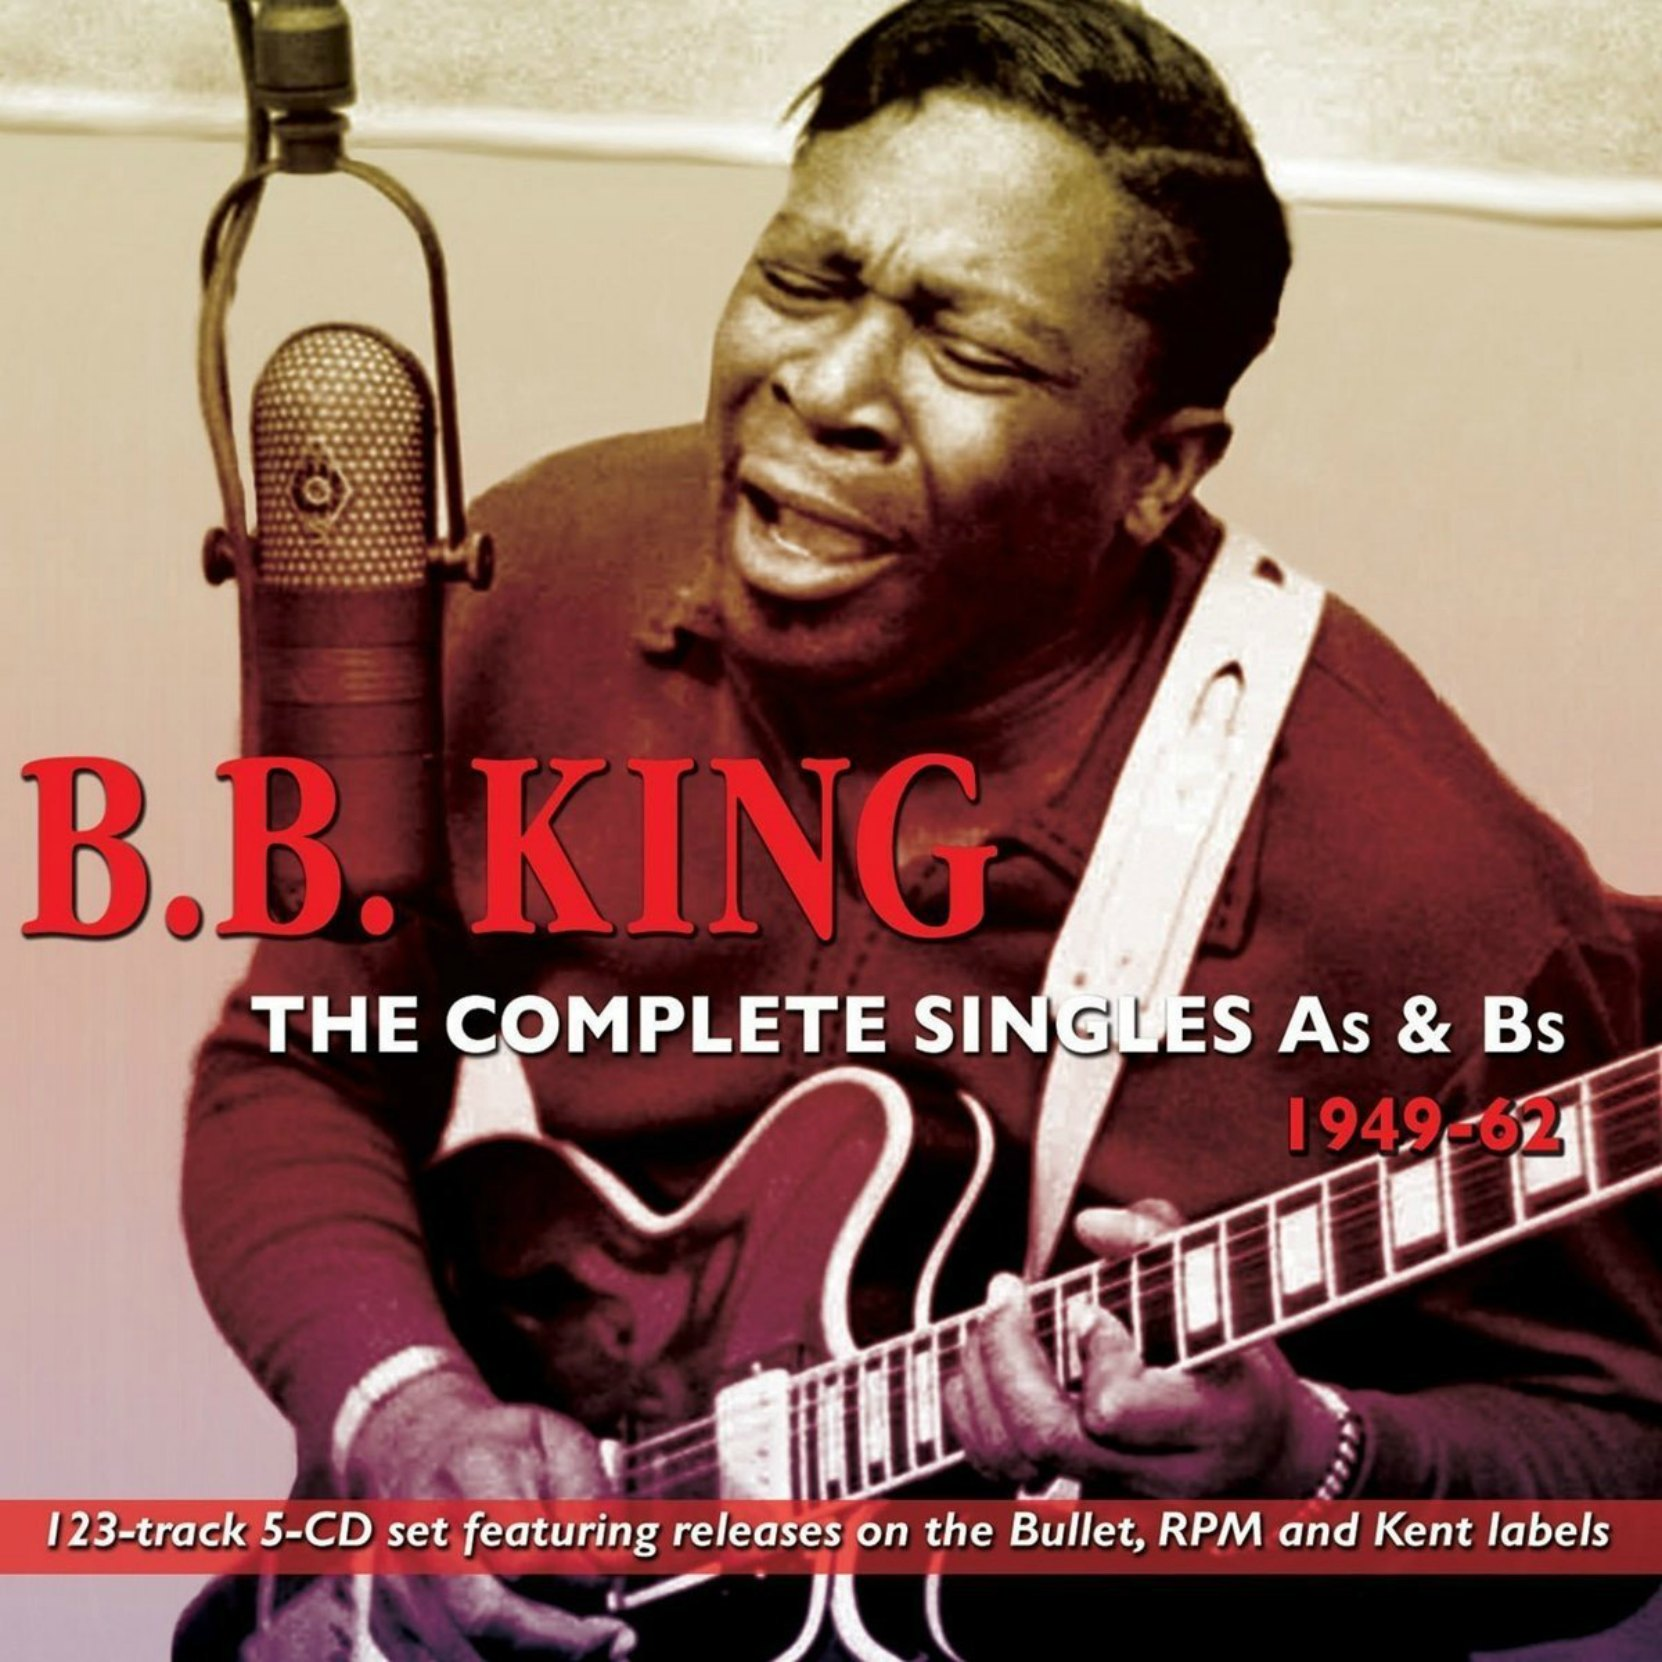 CD cover, B.B. King: The Complete Singles A's & B's 1949-62 on Acrobat Records.